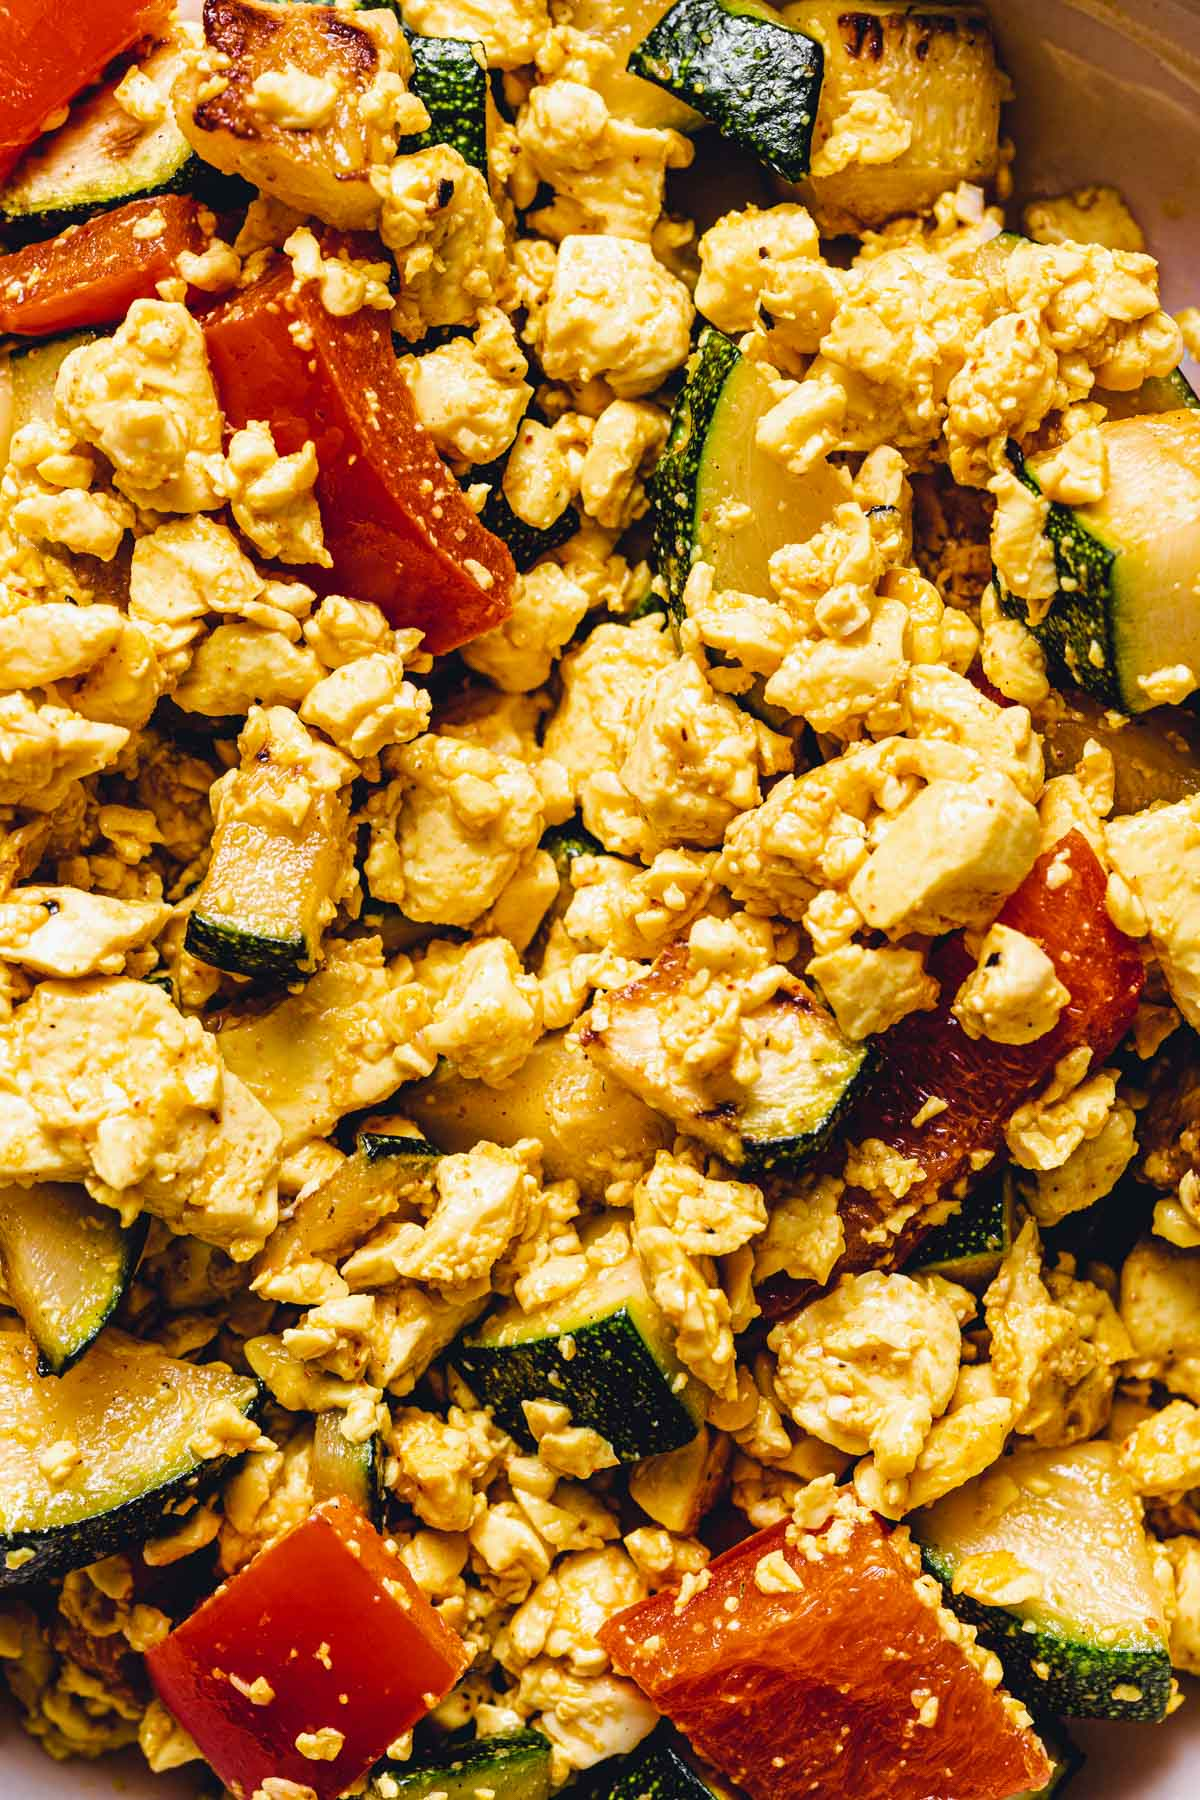 A close-up image of scrambled tofu with courgette and peppers.